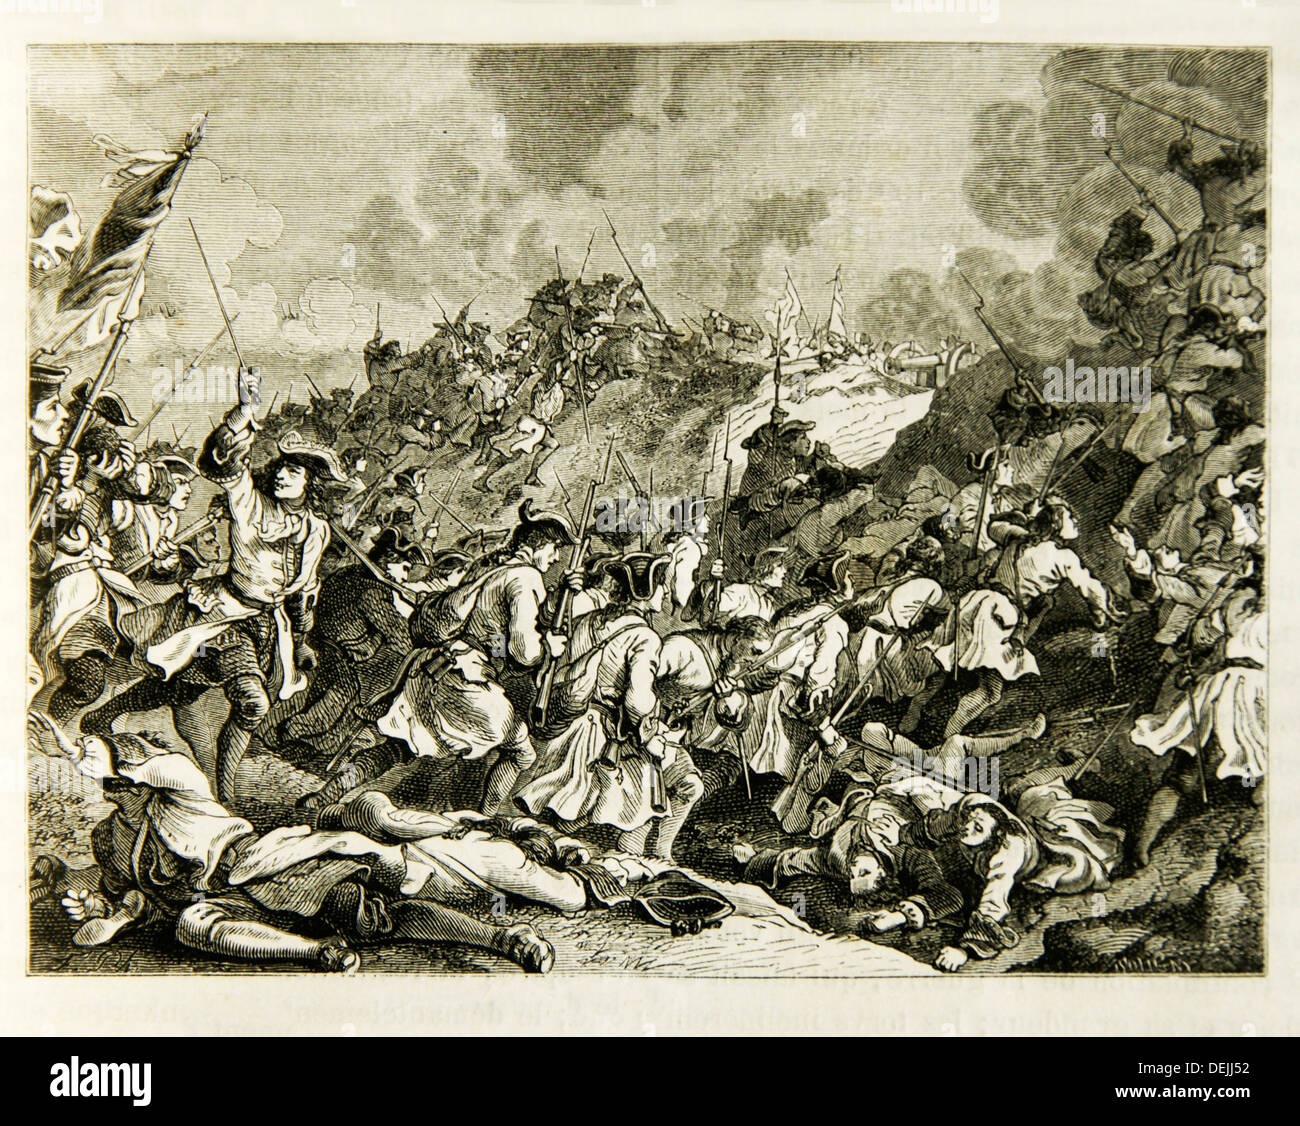 Battle of Denain on 24 July 1712, part of the War of the Spanish Succession